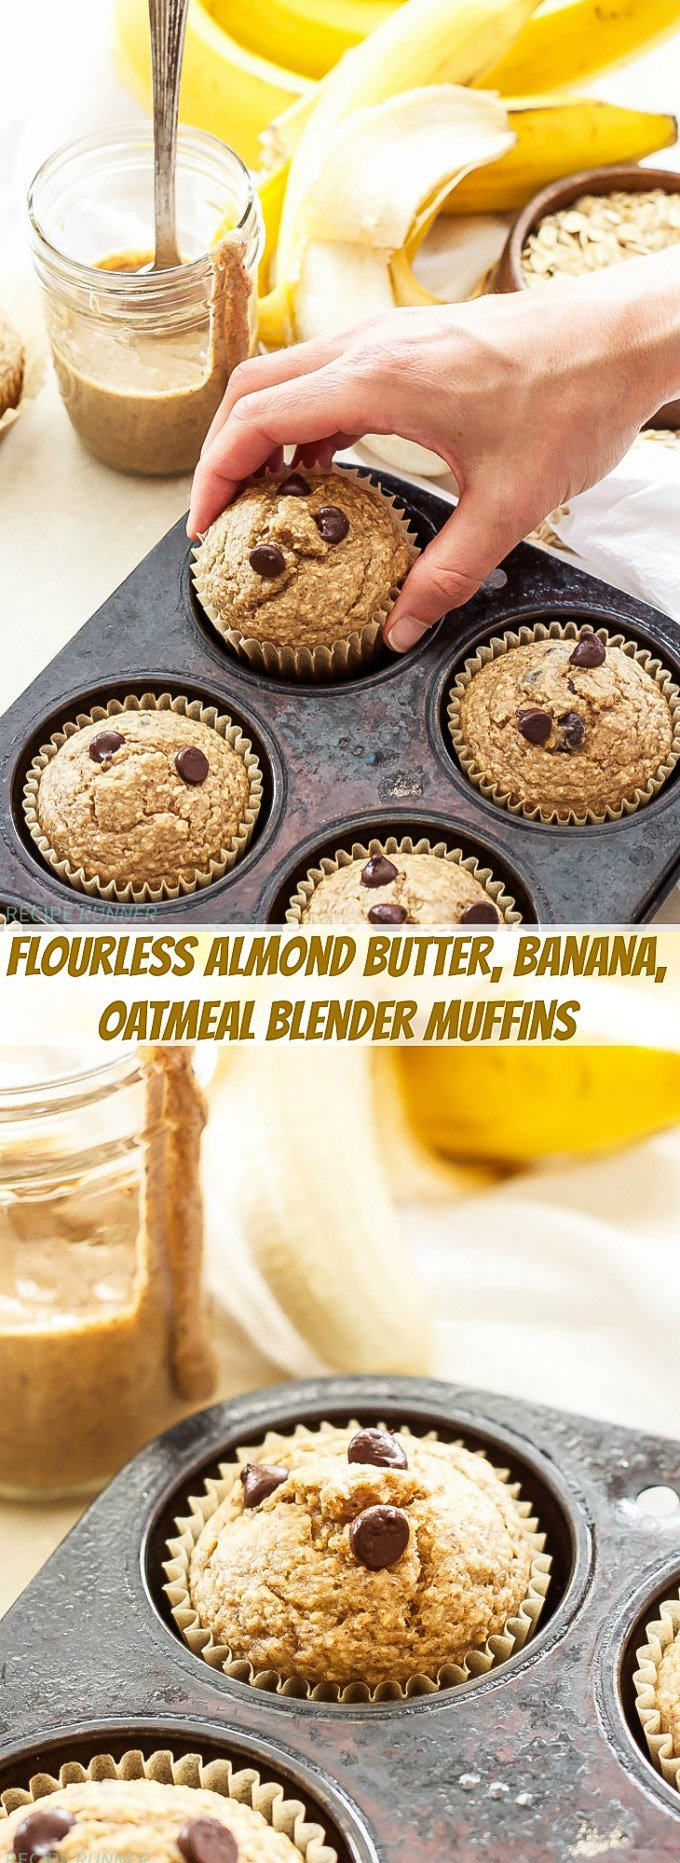 Almond Butter, Banana, Oatmeal Blender Muffins | You'll love how easy and tasty these flourless Almond Butter, Banana, Oatmeal Blender Muffins are! It's as easy as blend, bake and store in the freezer for a healthy grab-and-go breakfast or snack!